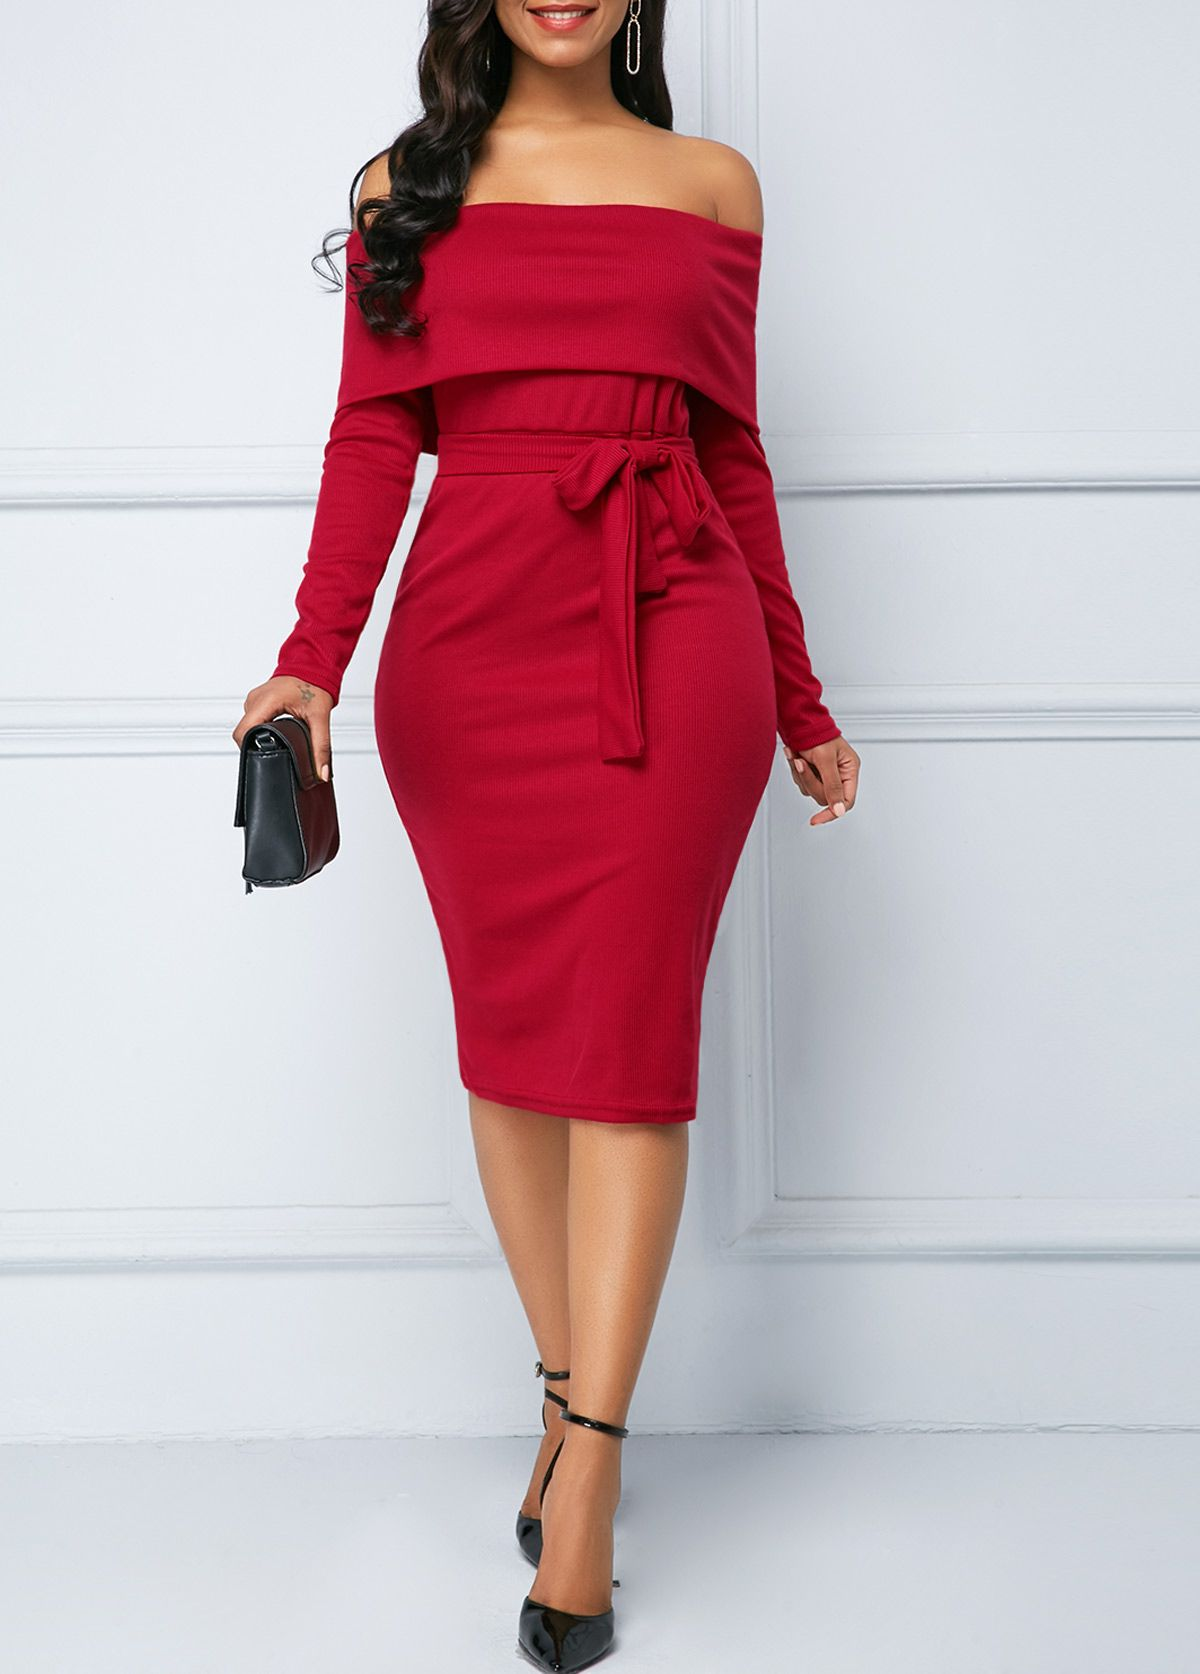 a7ae4c7554d1 Off the Shoulder Belted Wine Red Sheath Dress